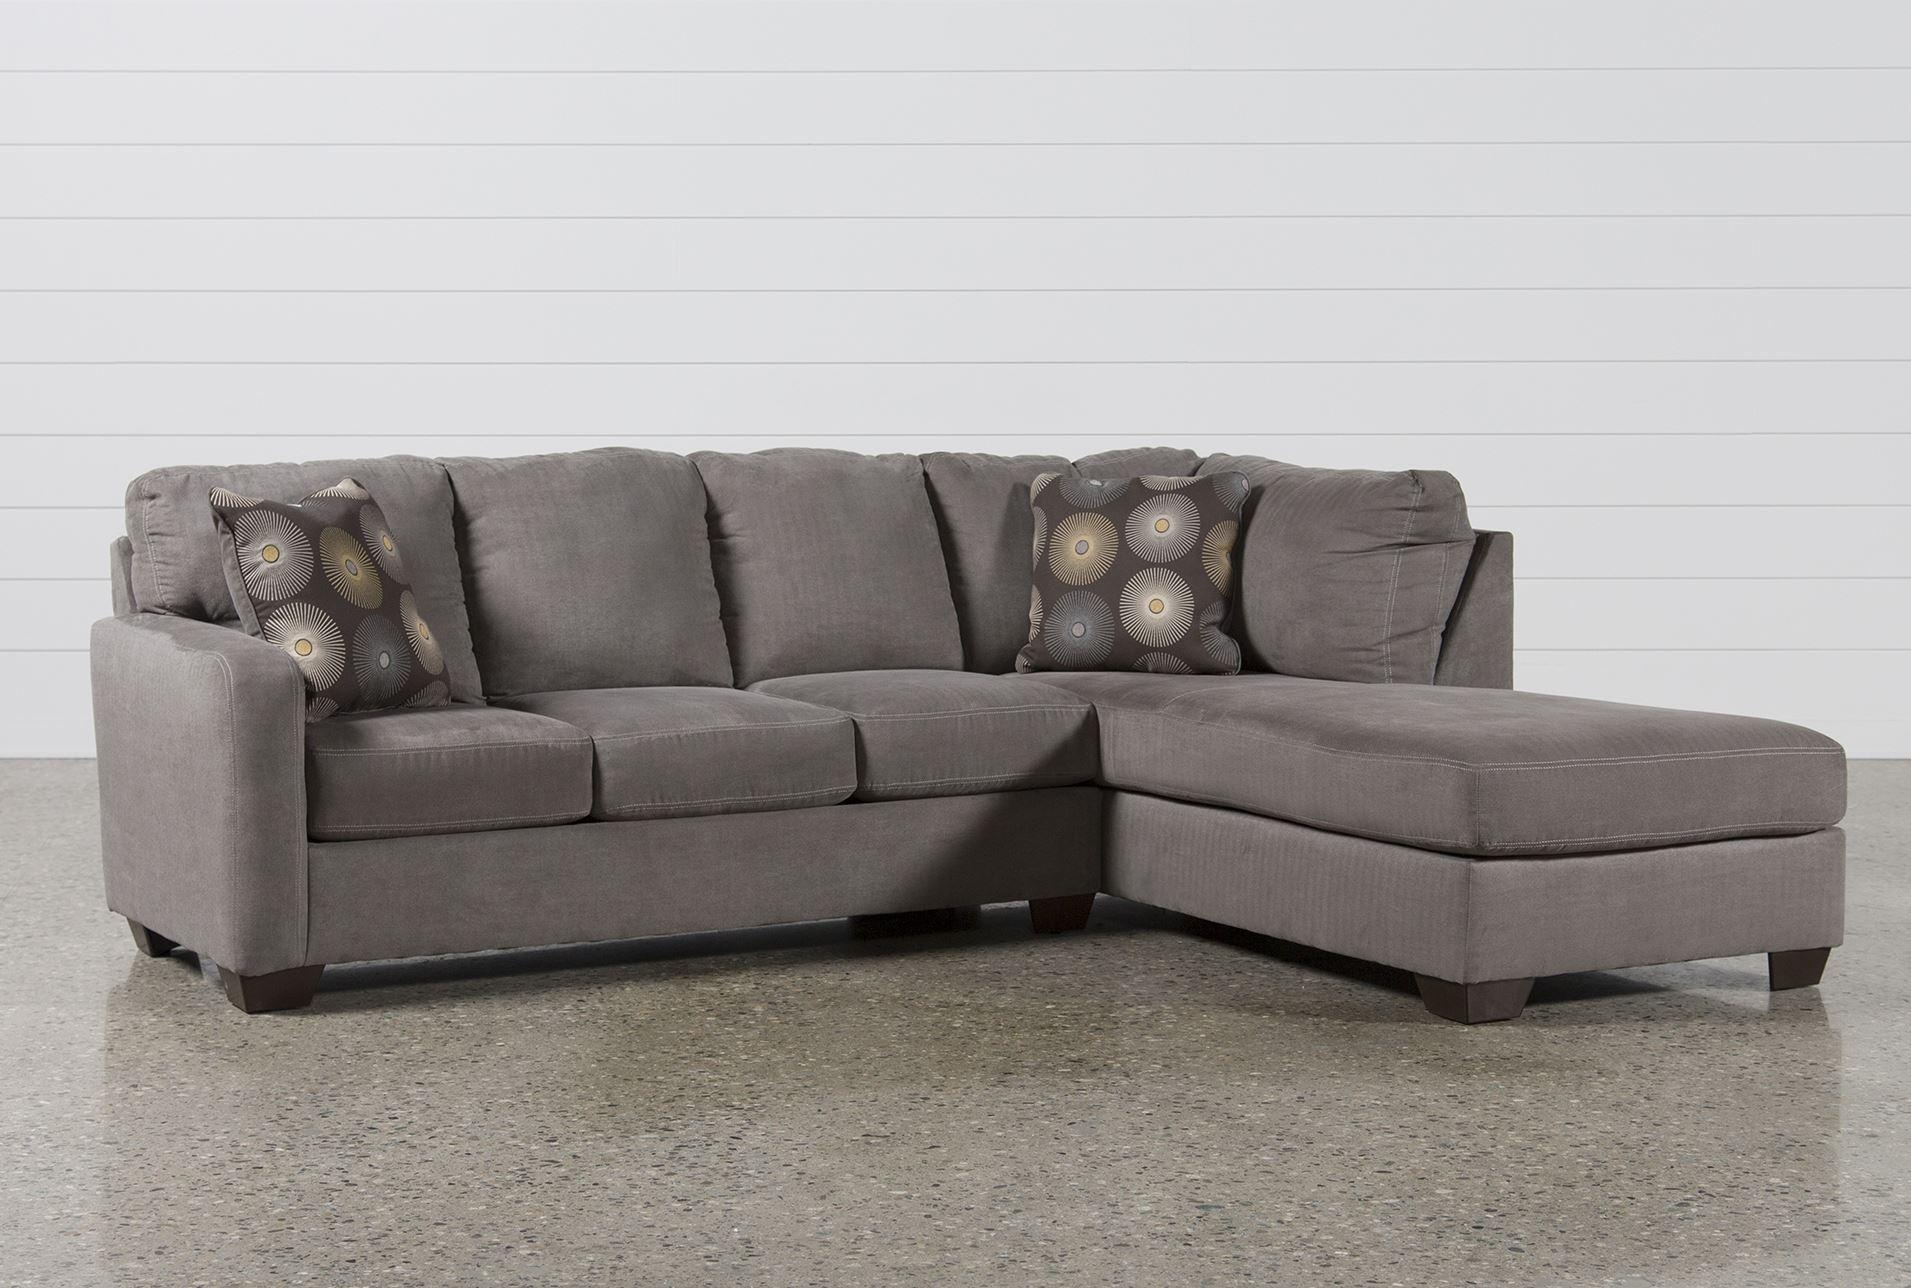 Long Sectional Sofa Toronto | Tehranmix Decoration Pertaining To Leather Sectional Sofas Toronto (Image 10 of 20)